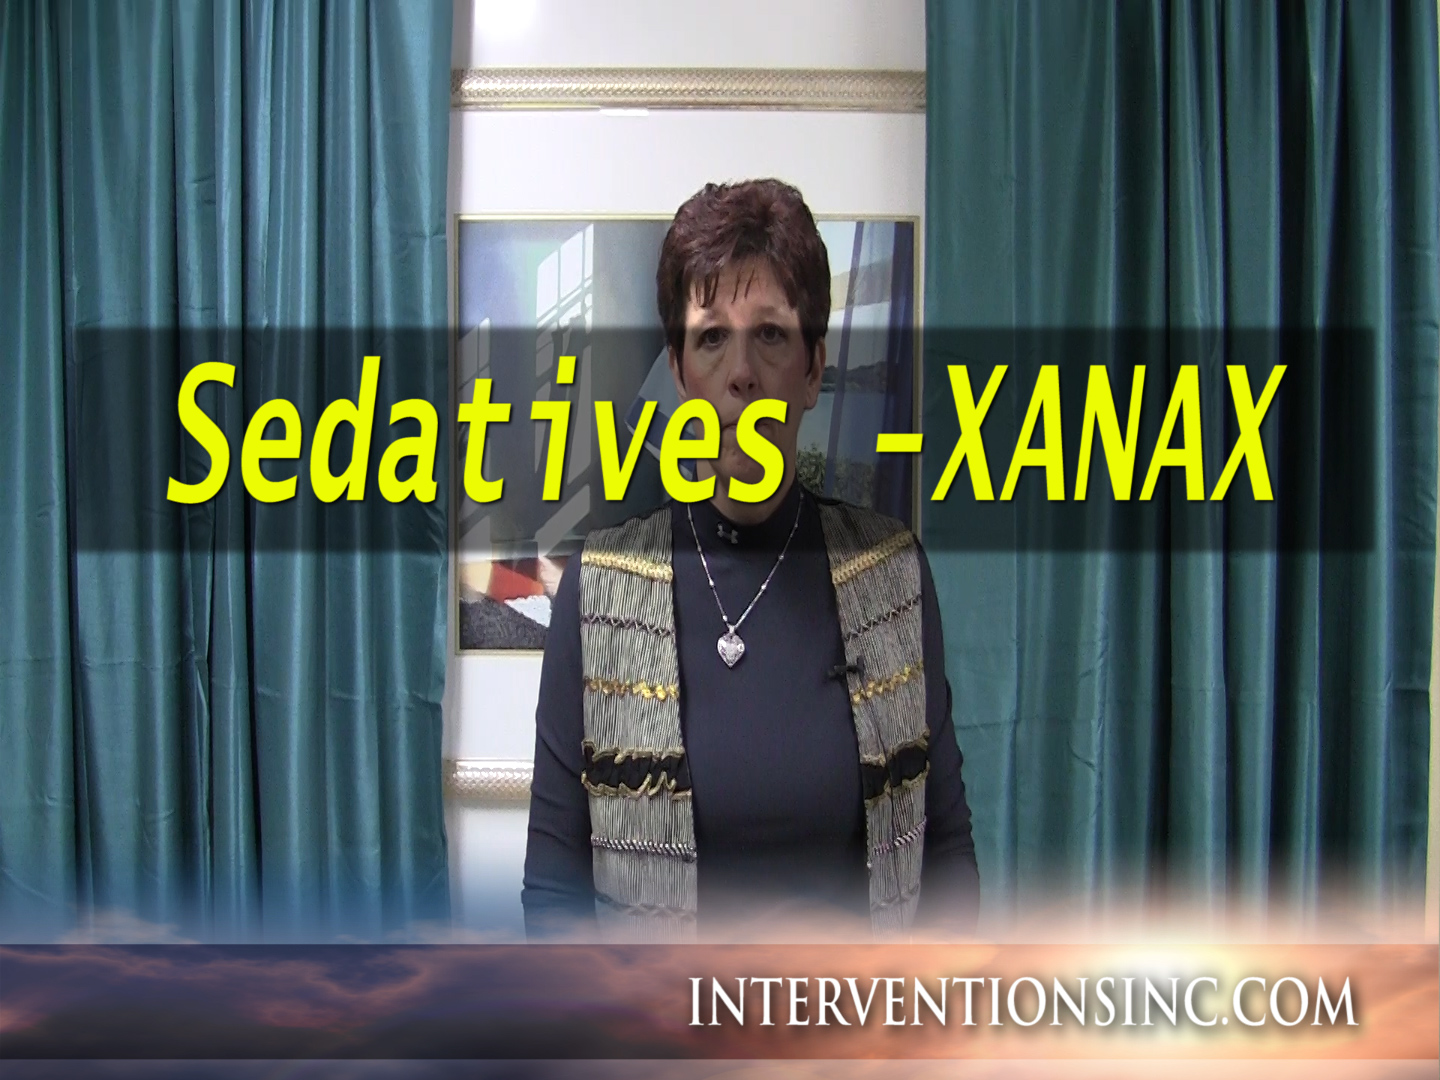 Xanax – Impact of Sedatives